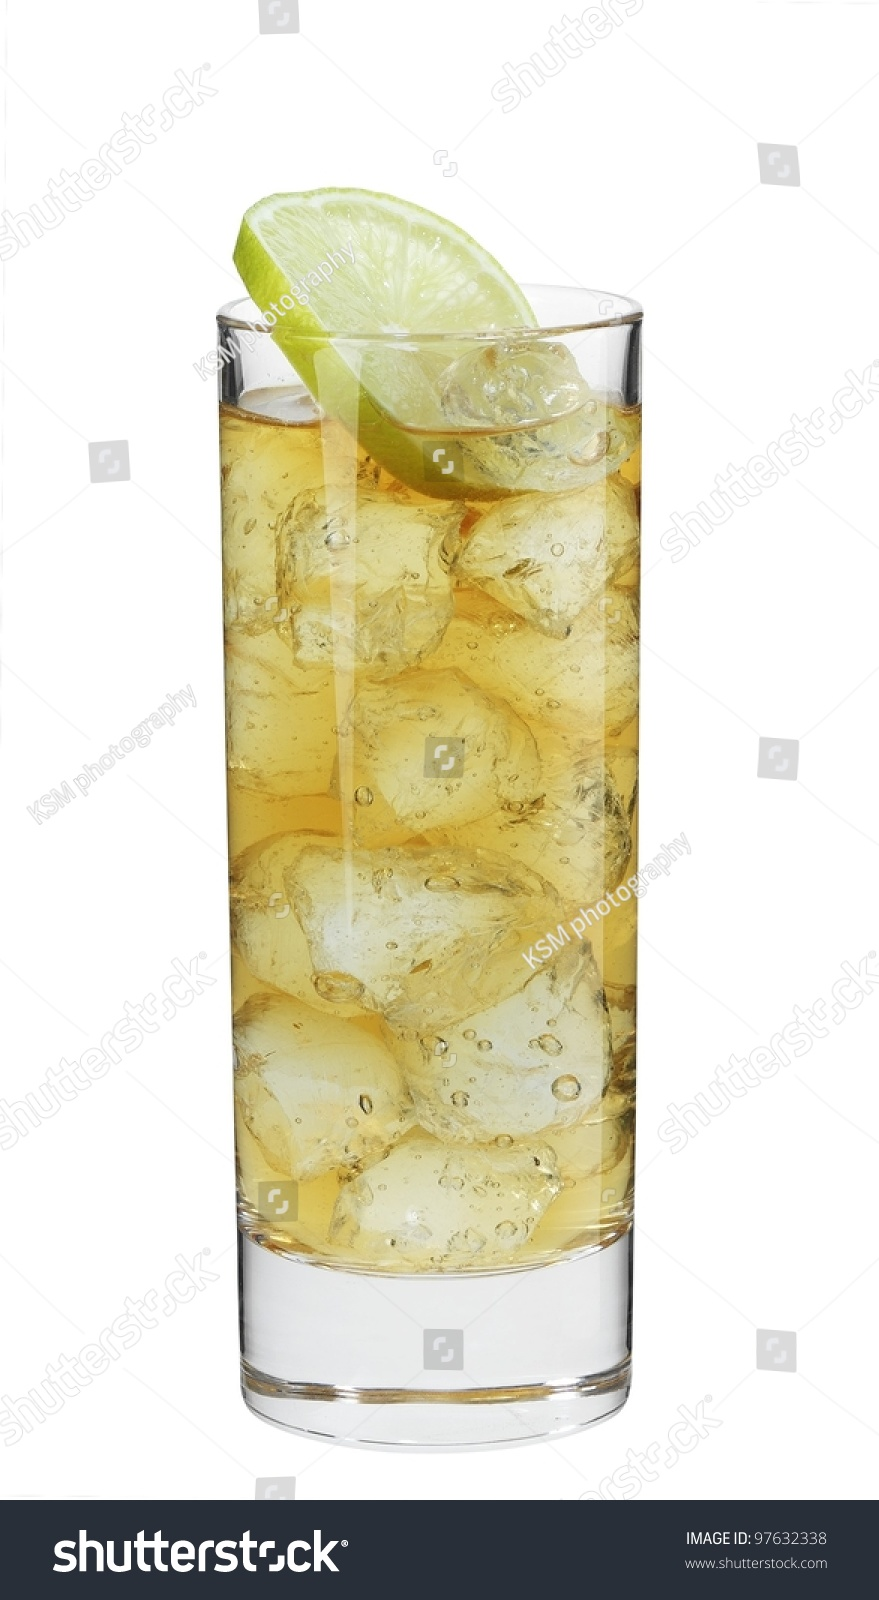 Cocktail jameson ginger stock photo 97632338 shutterstock for Mixed drink with jameson